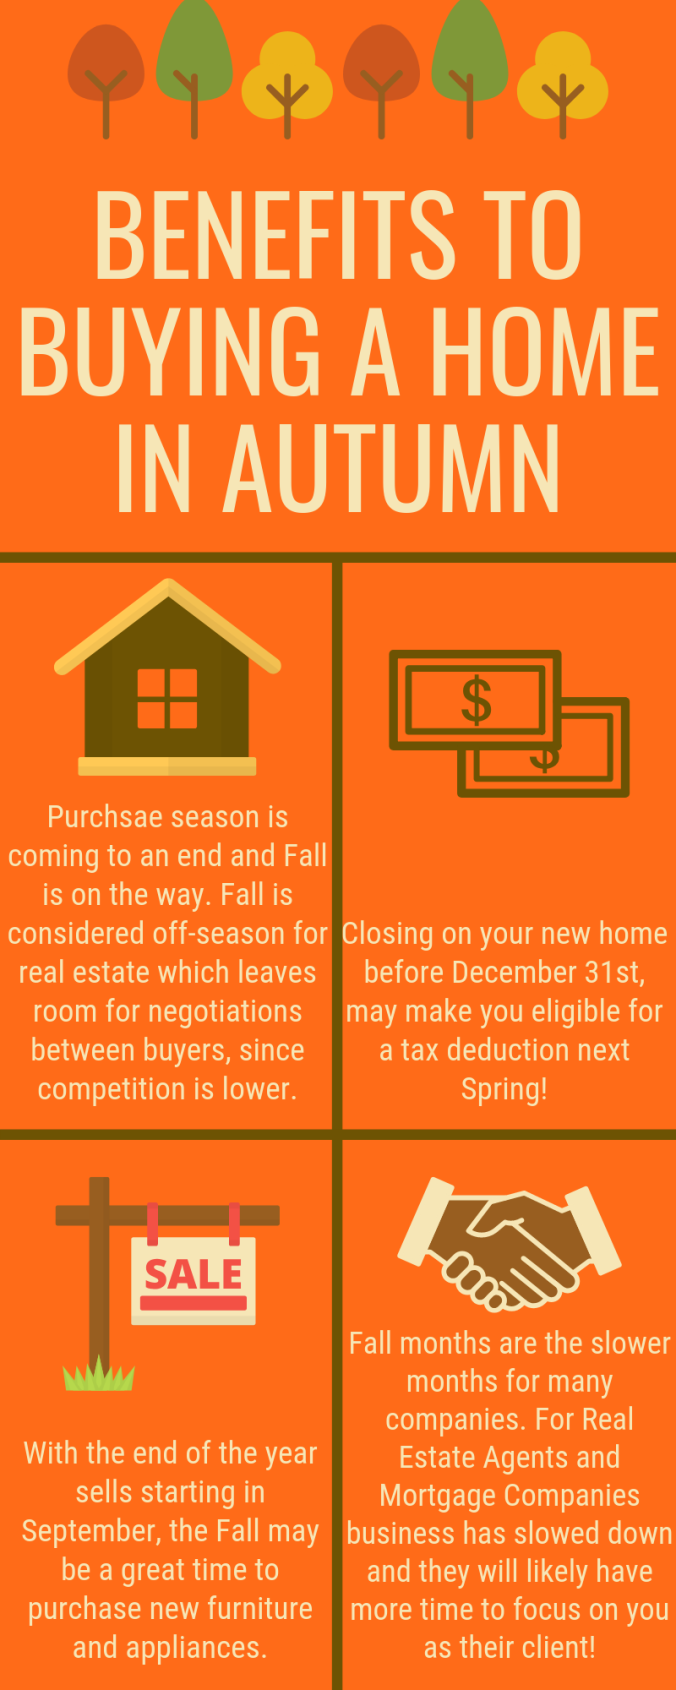 Benefits to buying in autumn (1)